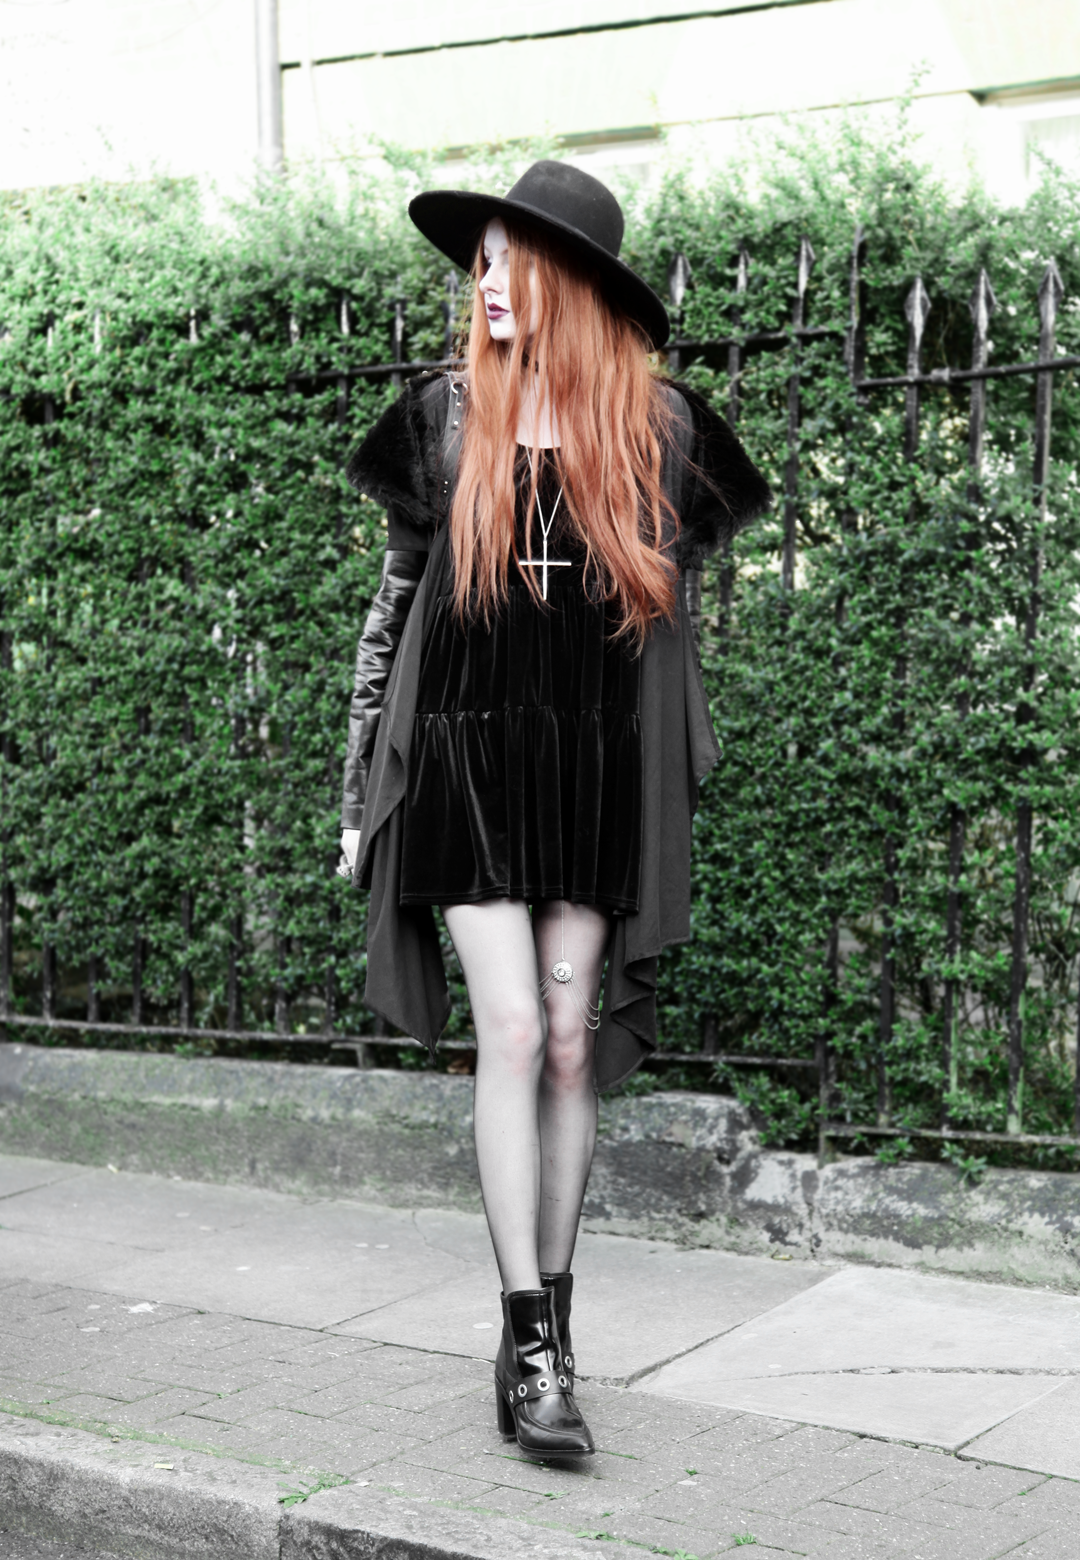 Olivia Emily wears Asos Reclaimed Vintage tiered black velvet dress, Killstar Witch Brim hat, Sanctus Asylum vegan suede coat, River Island leg chain, Asos eyelet boots